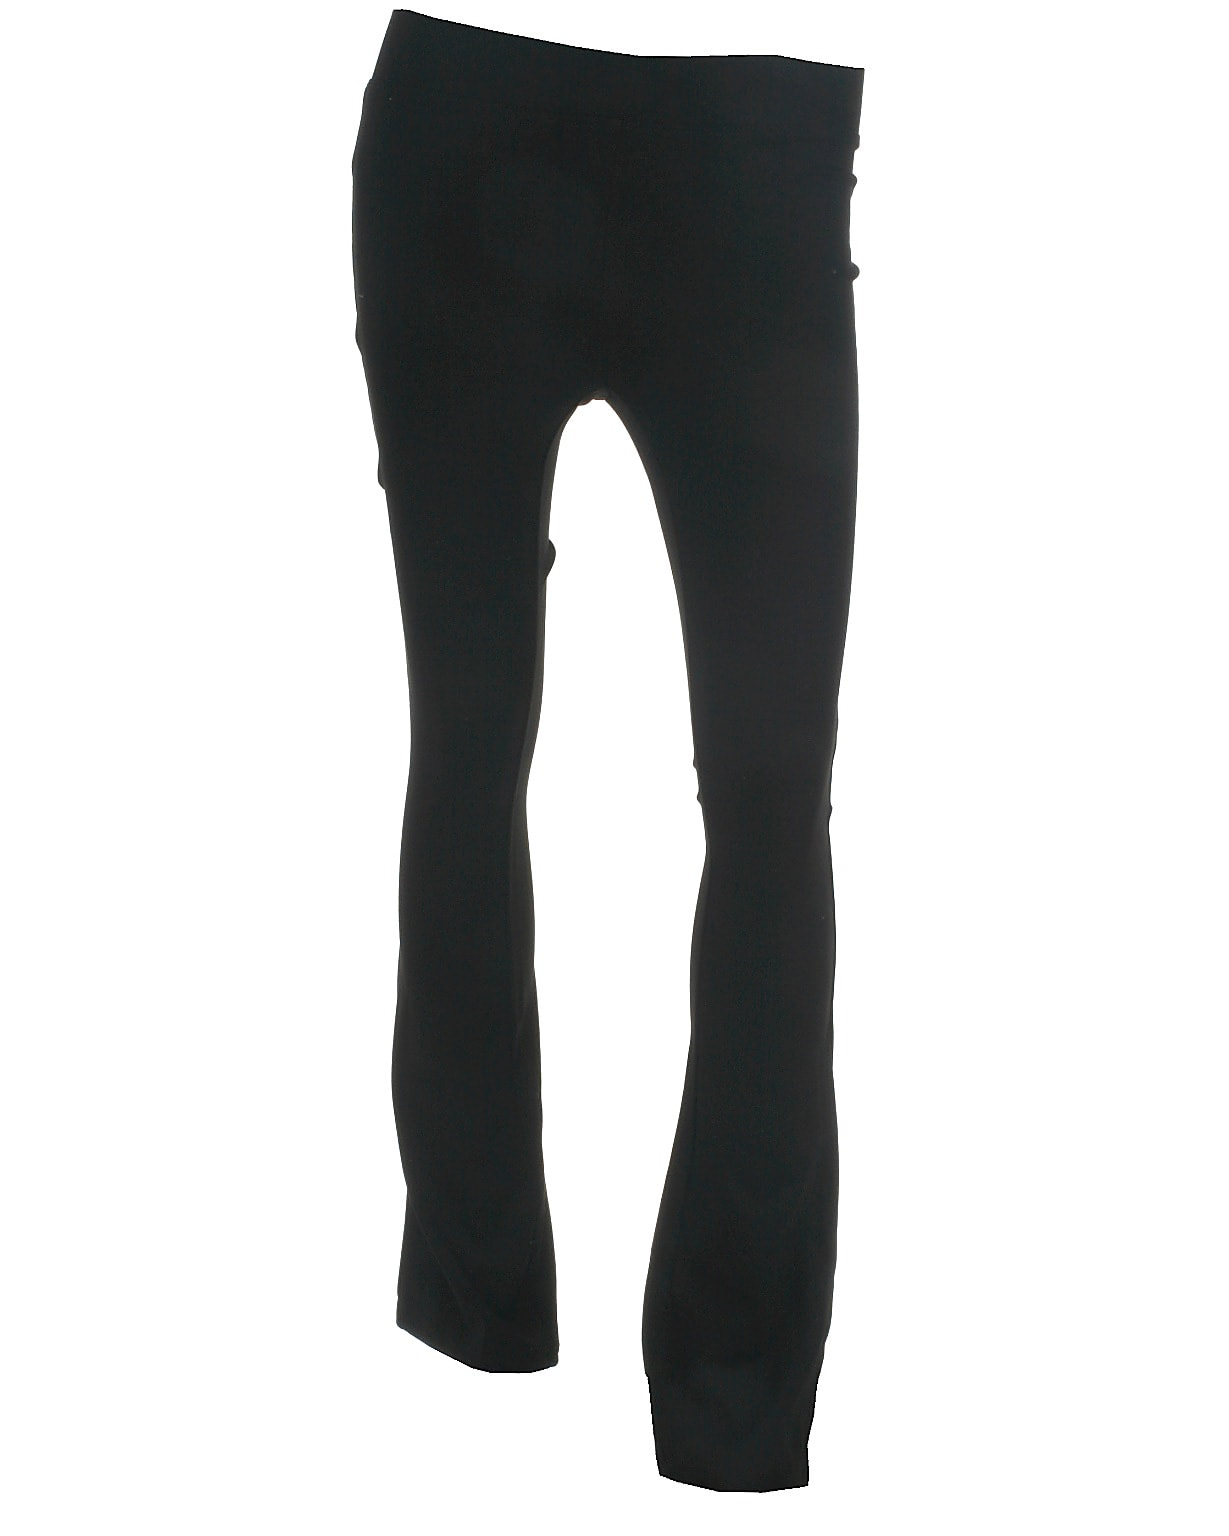 Image of Only Kids flared pant, Paige, black